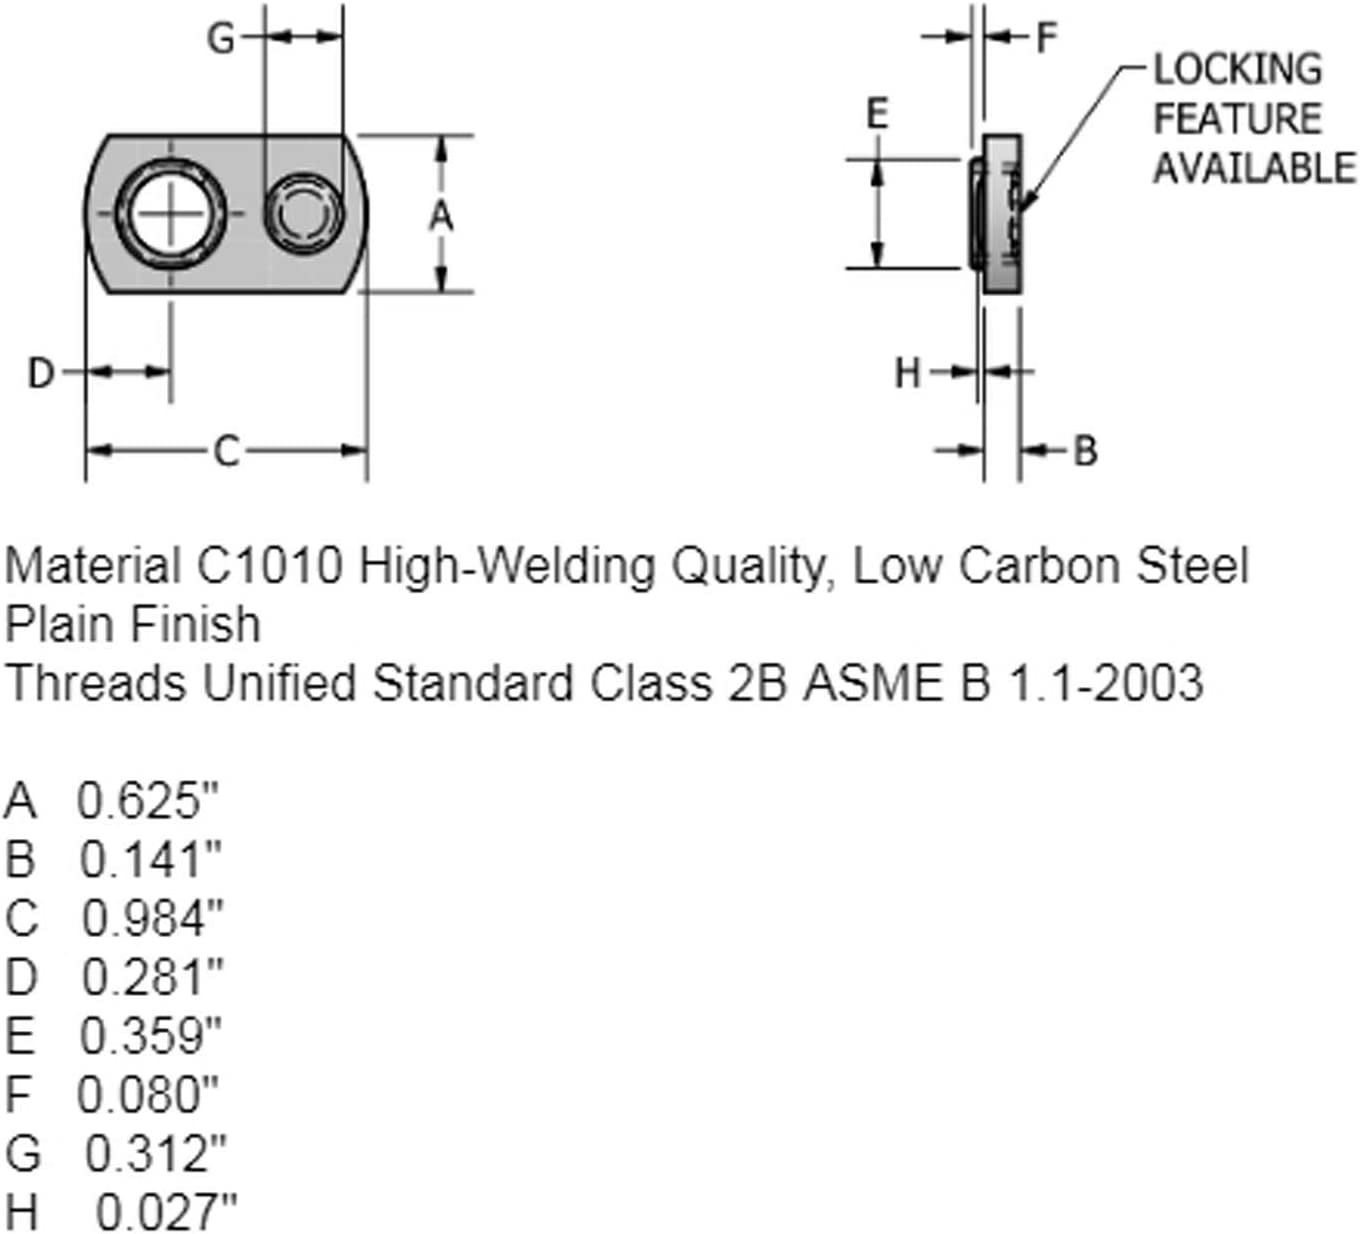 Weld Nuts//Spot//Offset Hole 20 Spot Weld Nuts 5//16-18 Single Tab Weld Nut with Target Low Carbon Plain Steel